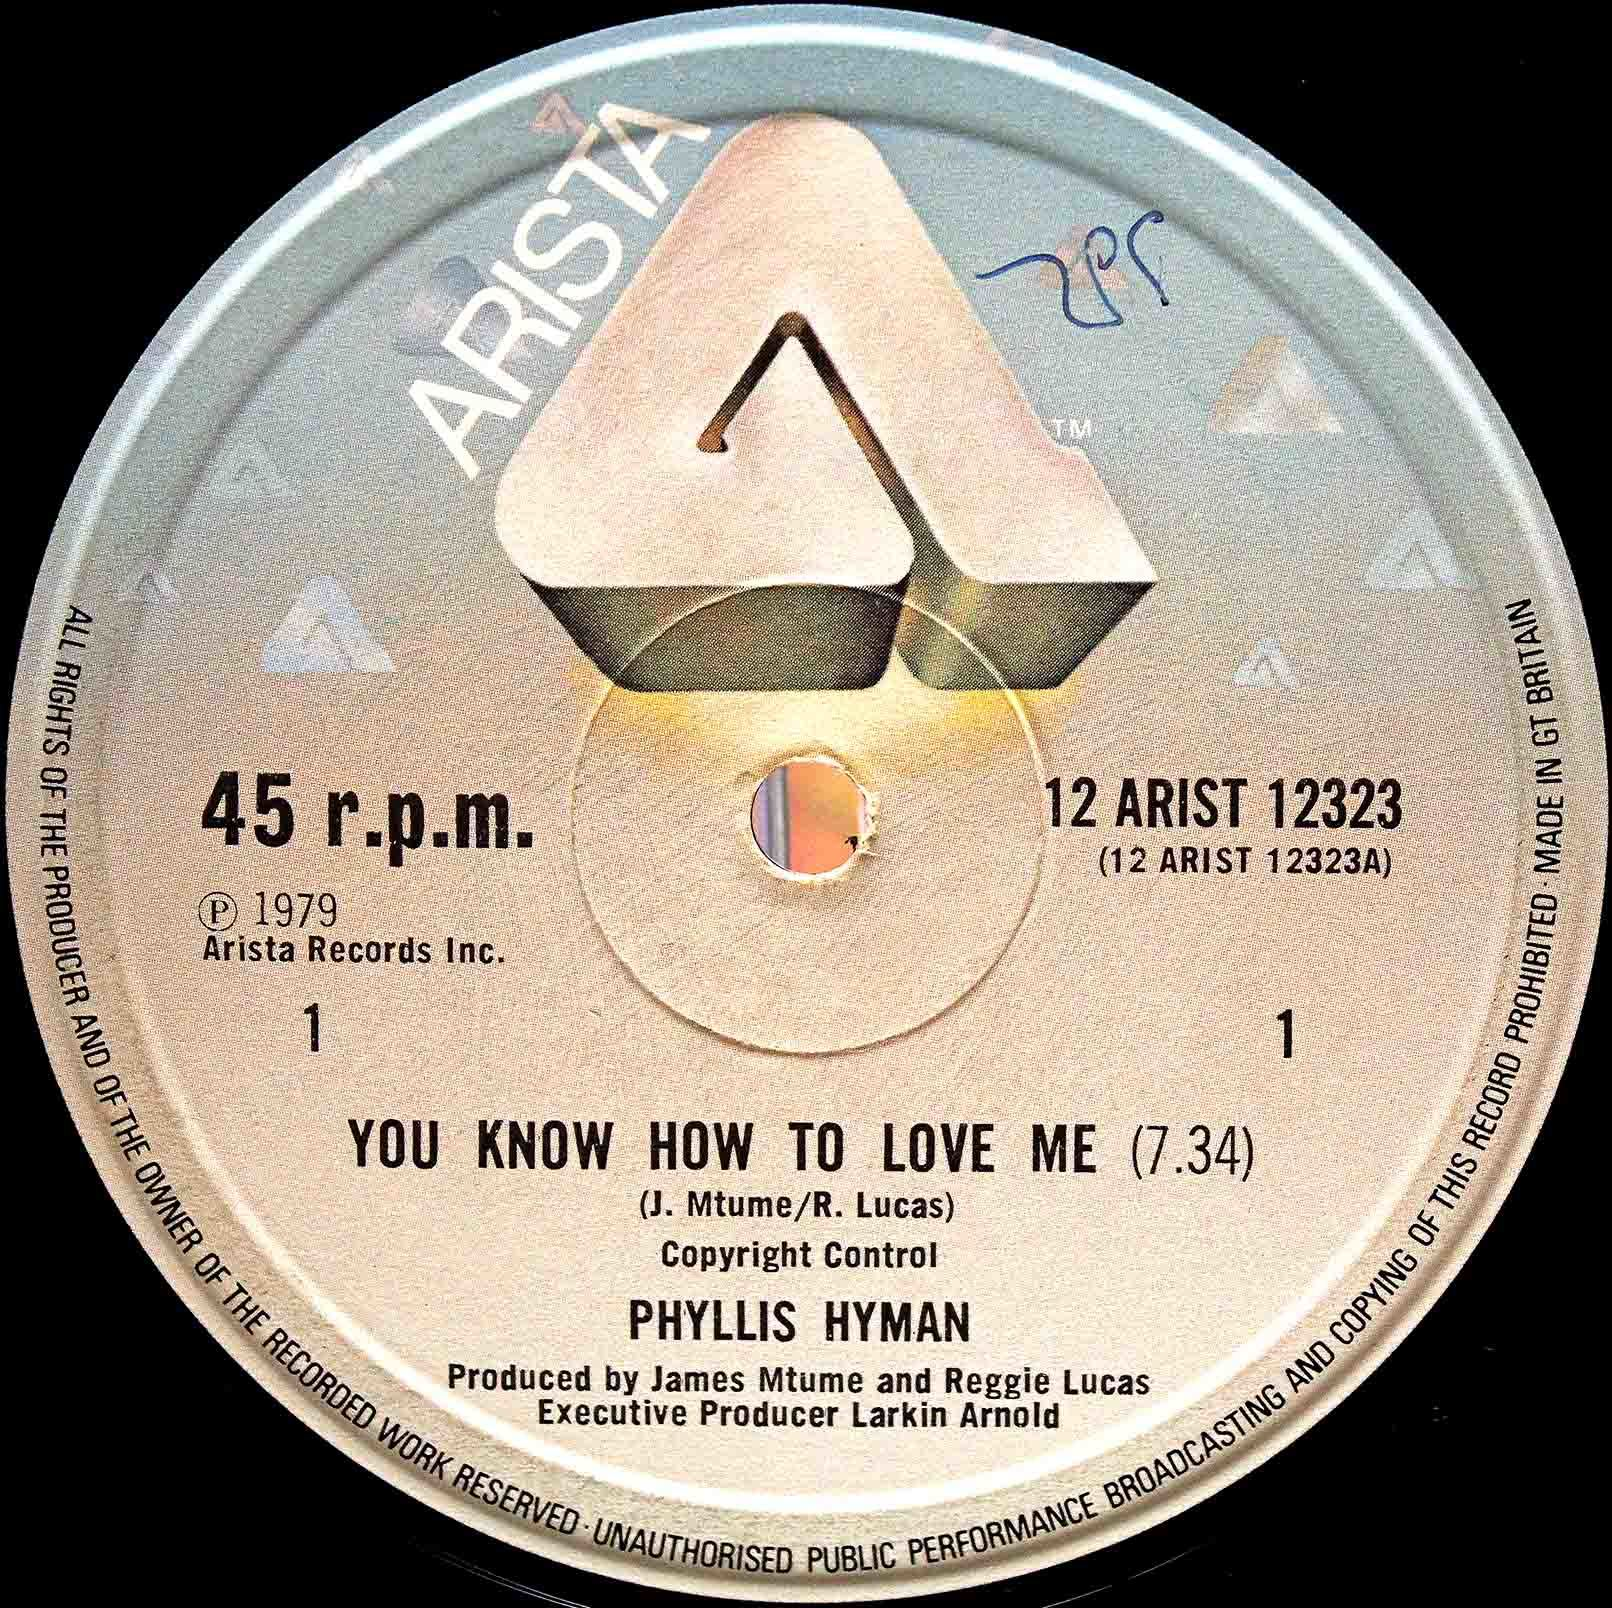 Phyllis Hyman – You Know How To Love Me 03